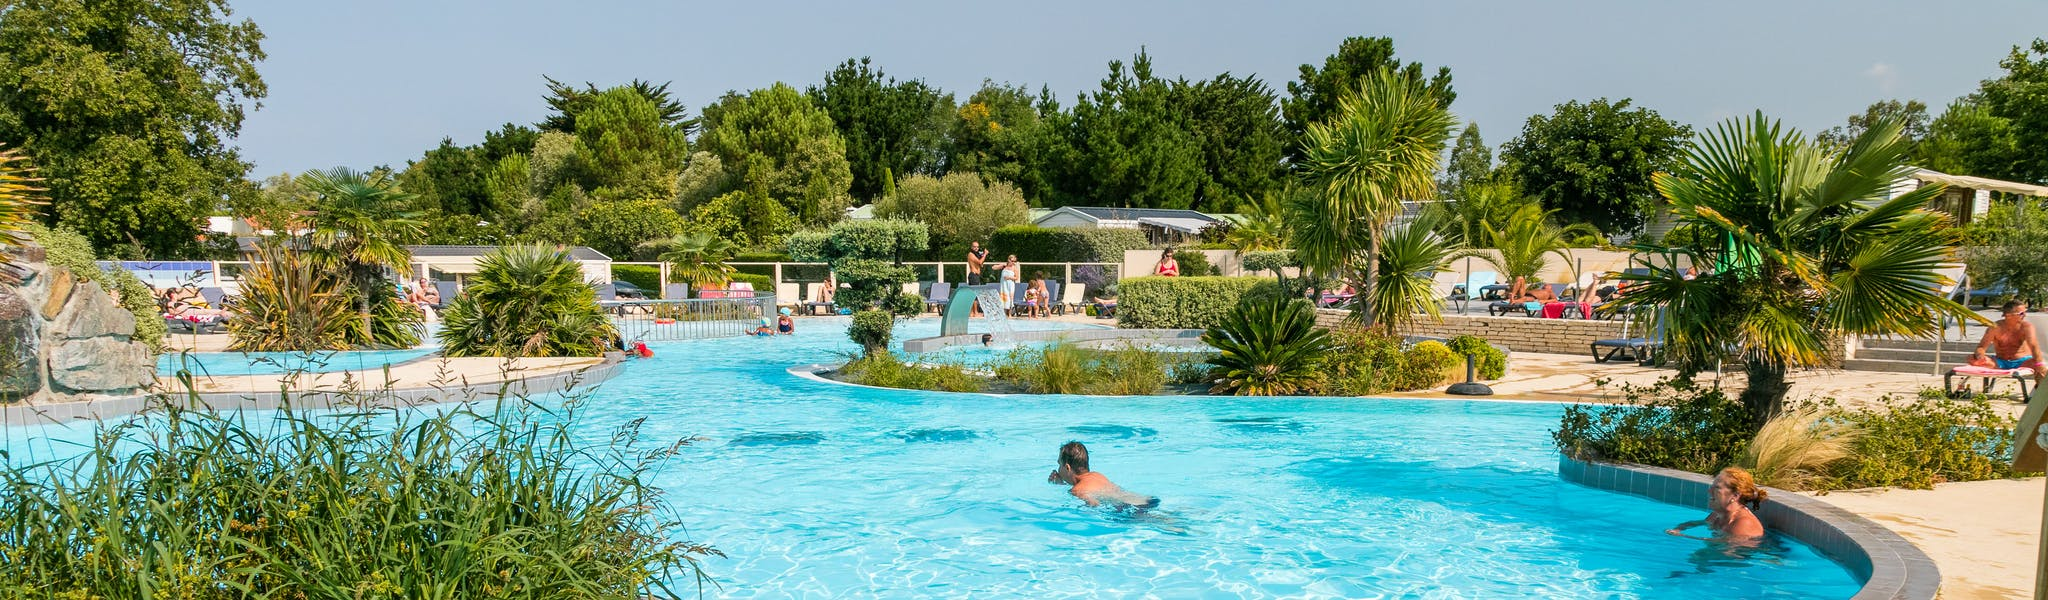 Camping Grosses Pierres